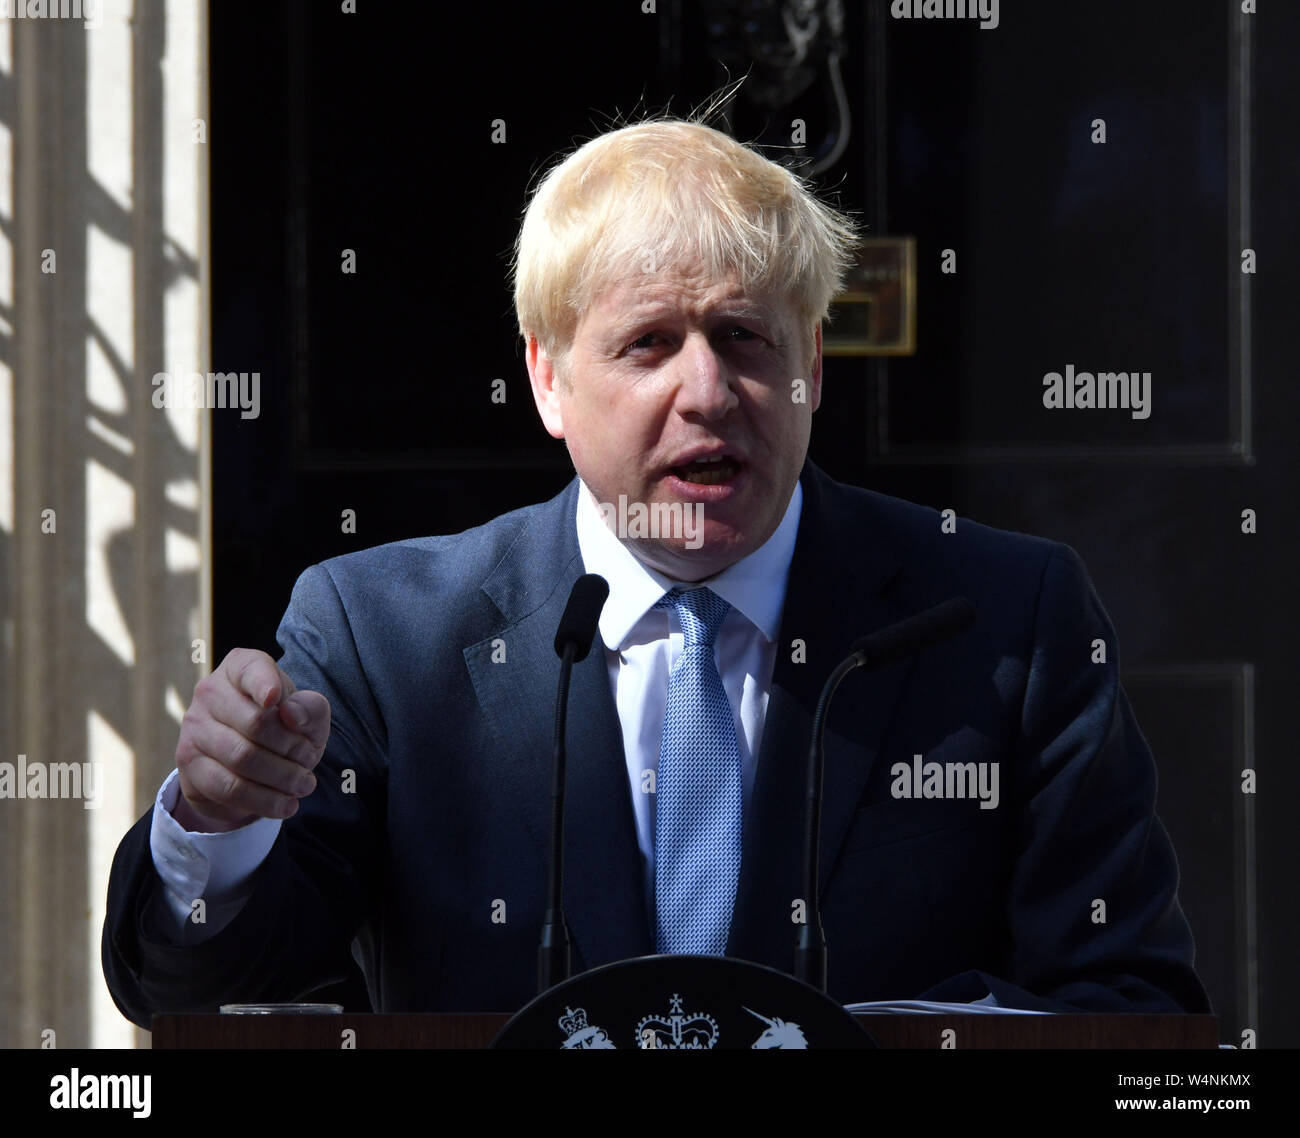 London, UK. 24th July 2019. Boris Johnson arrives at No10 Downing Street on first day as Prime Minster, London  London, UK - 24 July 2019 Credit: Nils Jorgensen/Alamy Live News Stock Photo